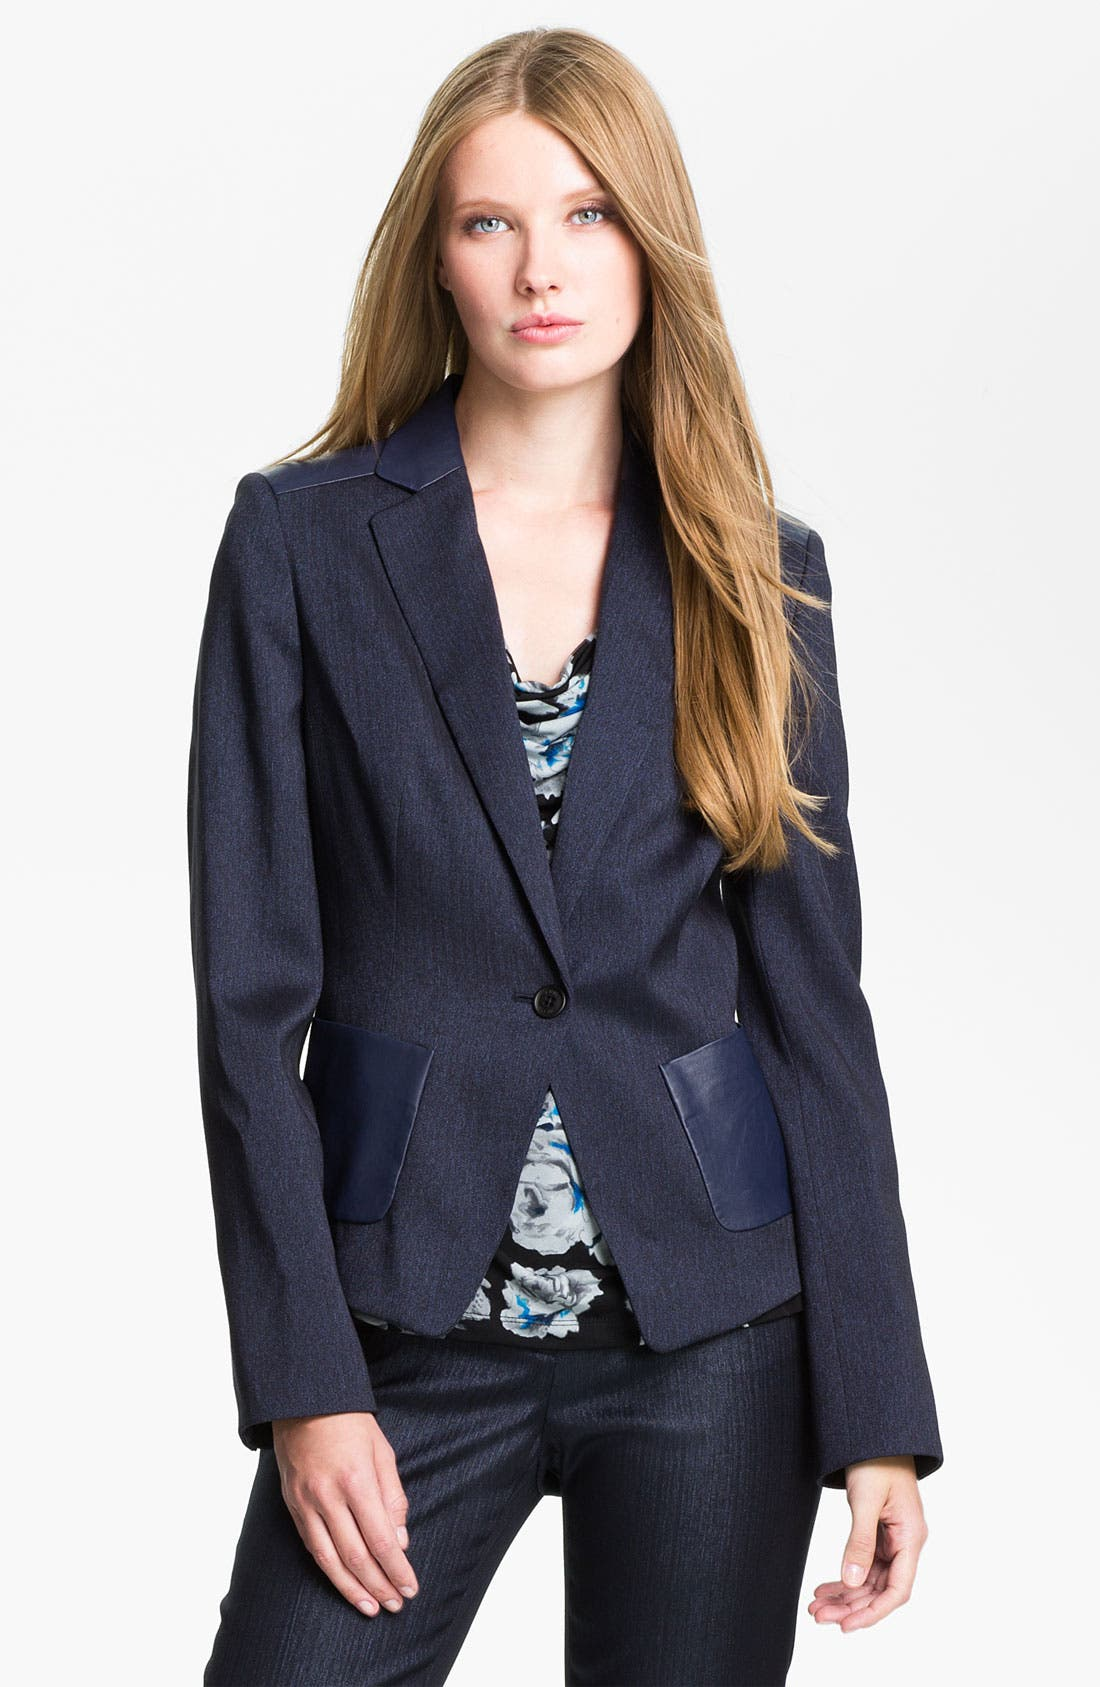 Alternate Image 1 Selected - Anne Klein Herringbone Jacket (Petite)